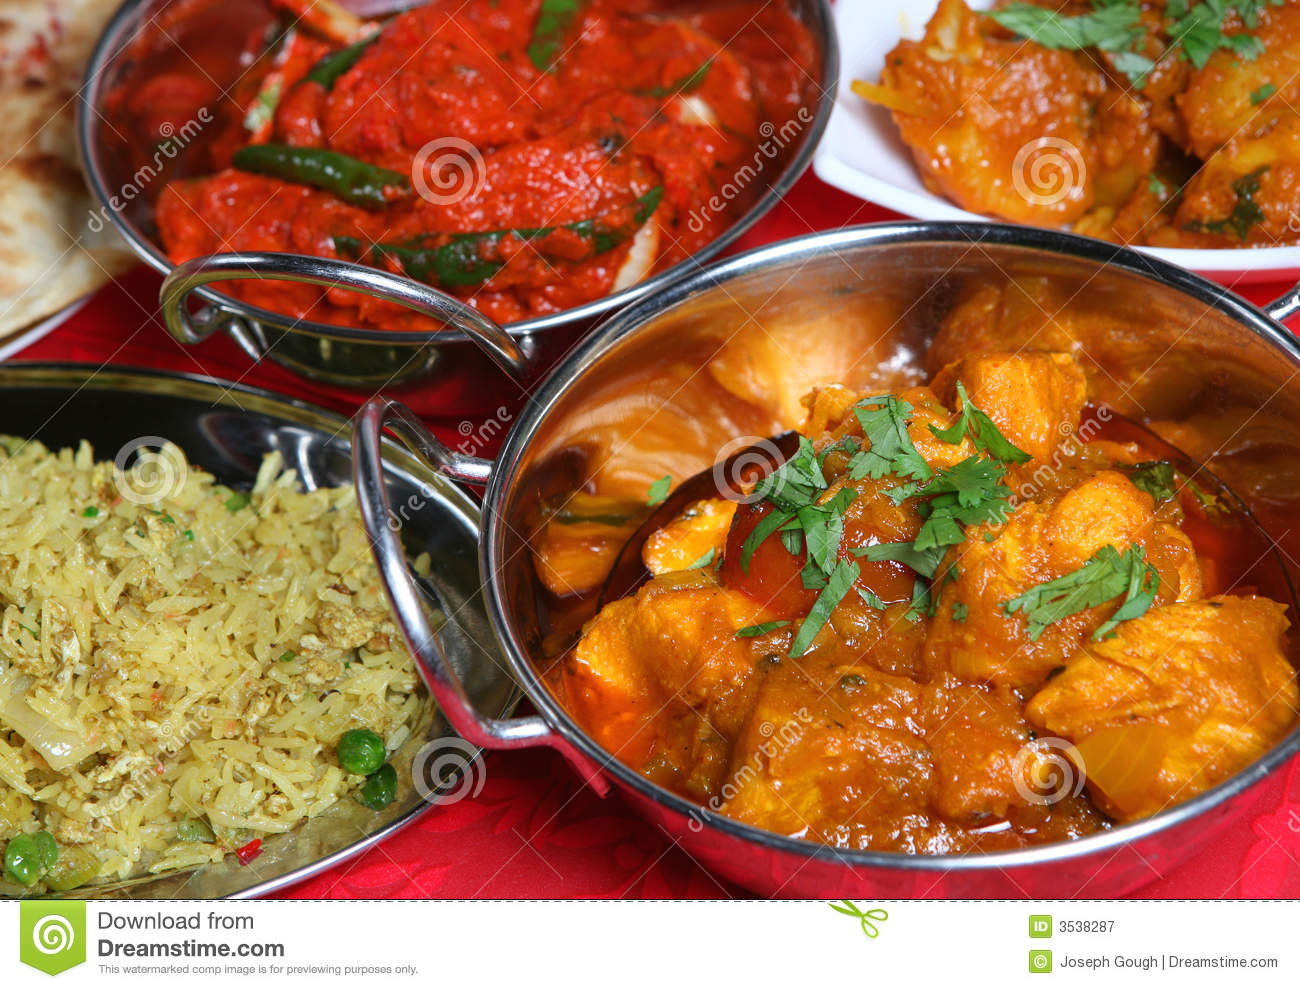 Indian Curry Meal Food Royalty Free Stock Photography - Image: 3538287